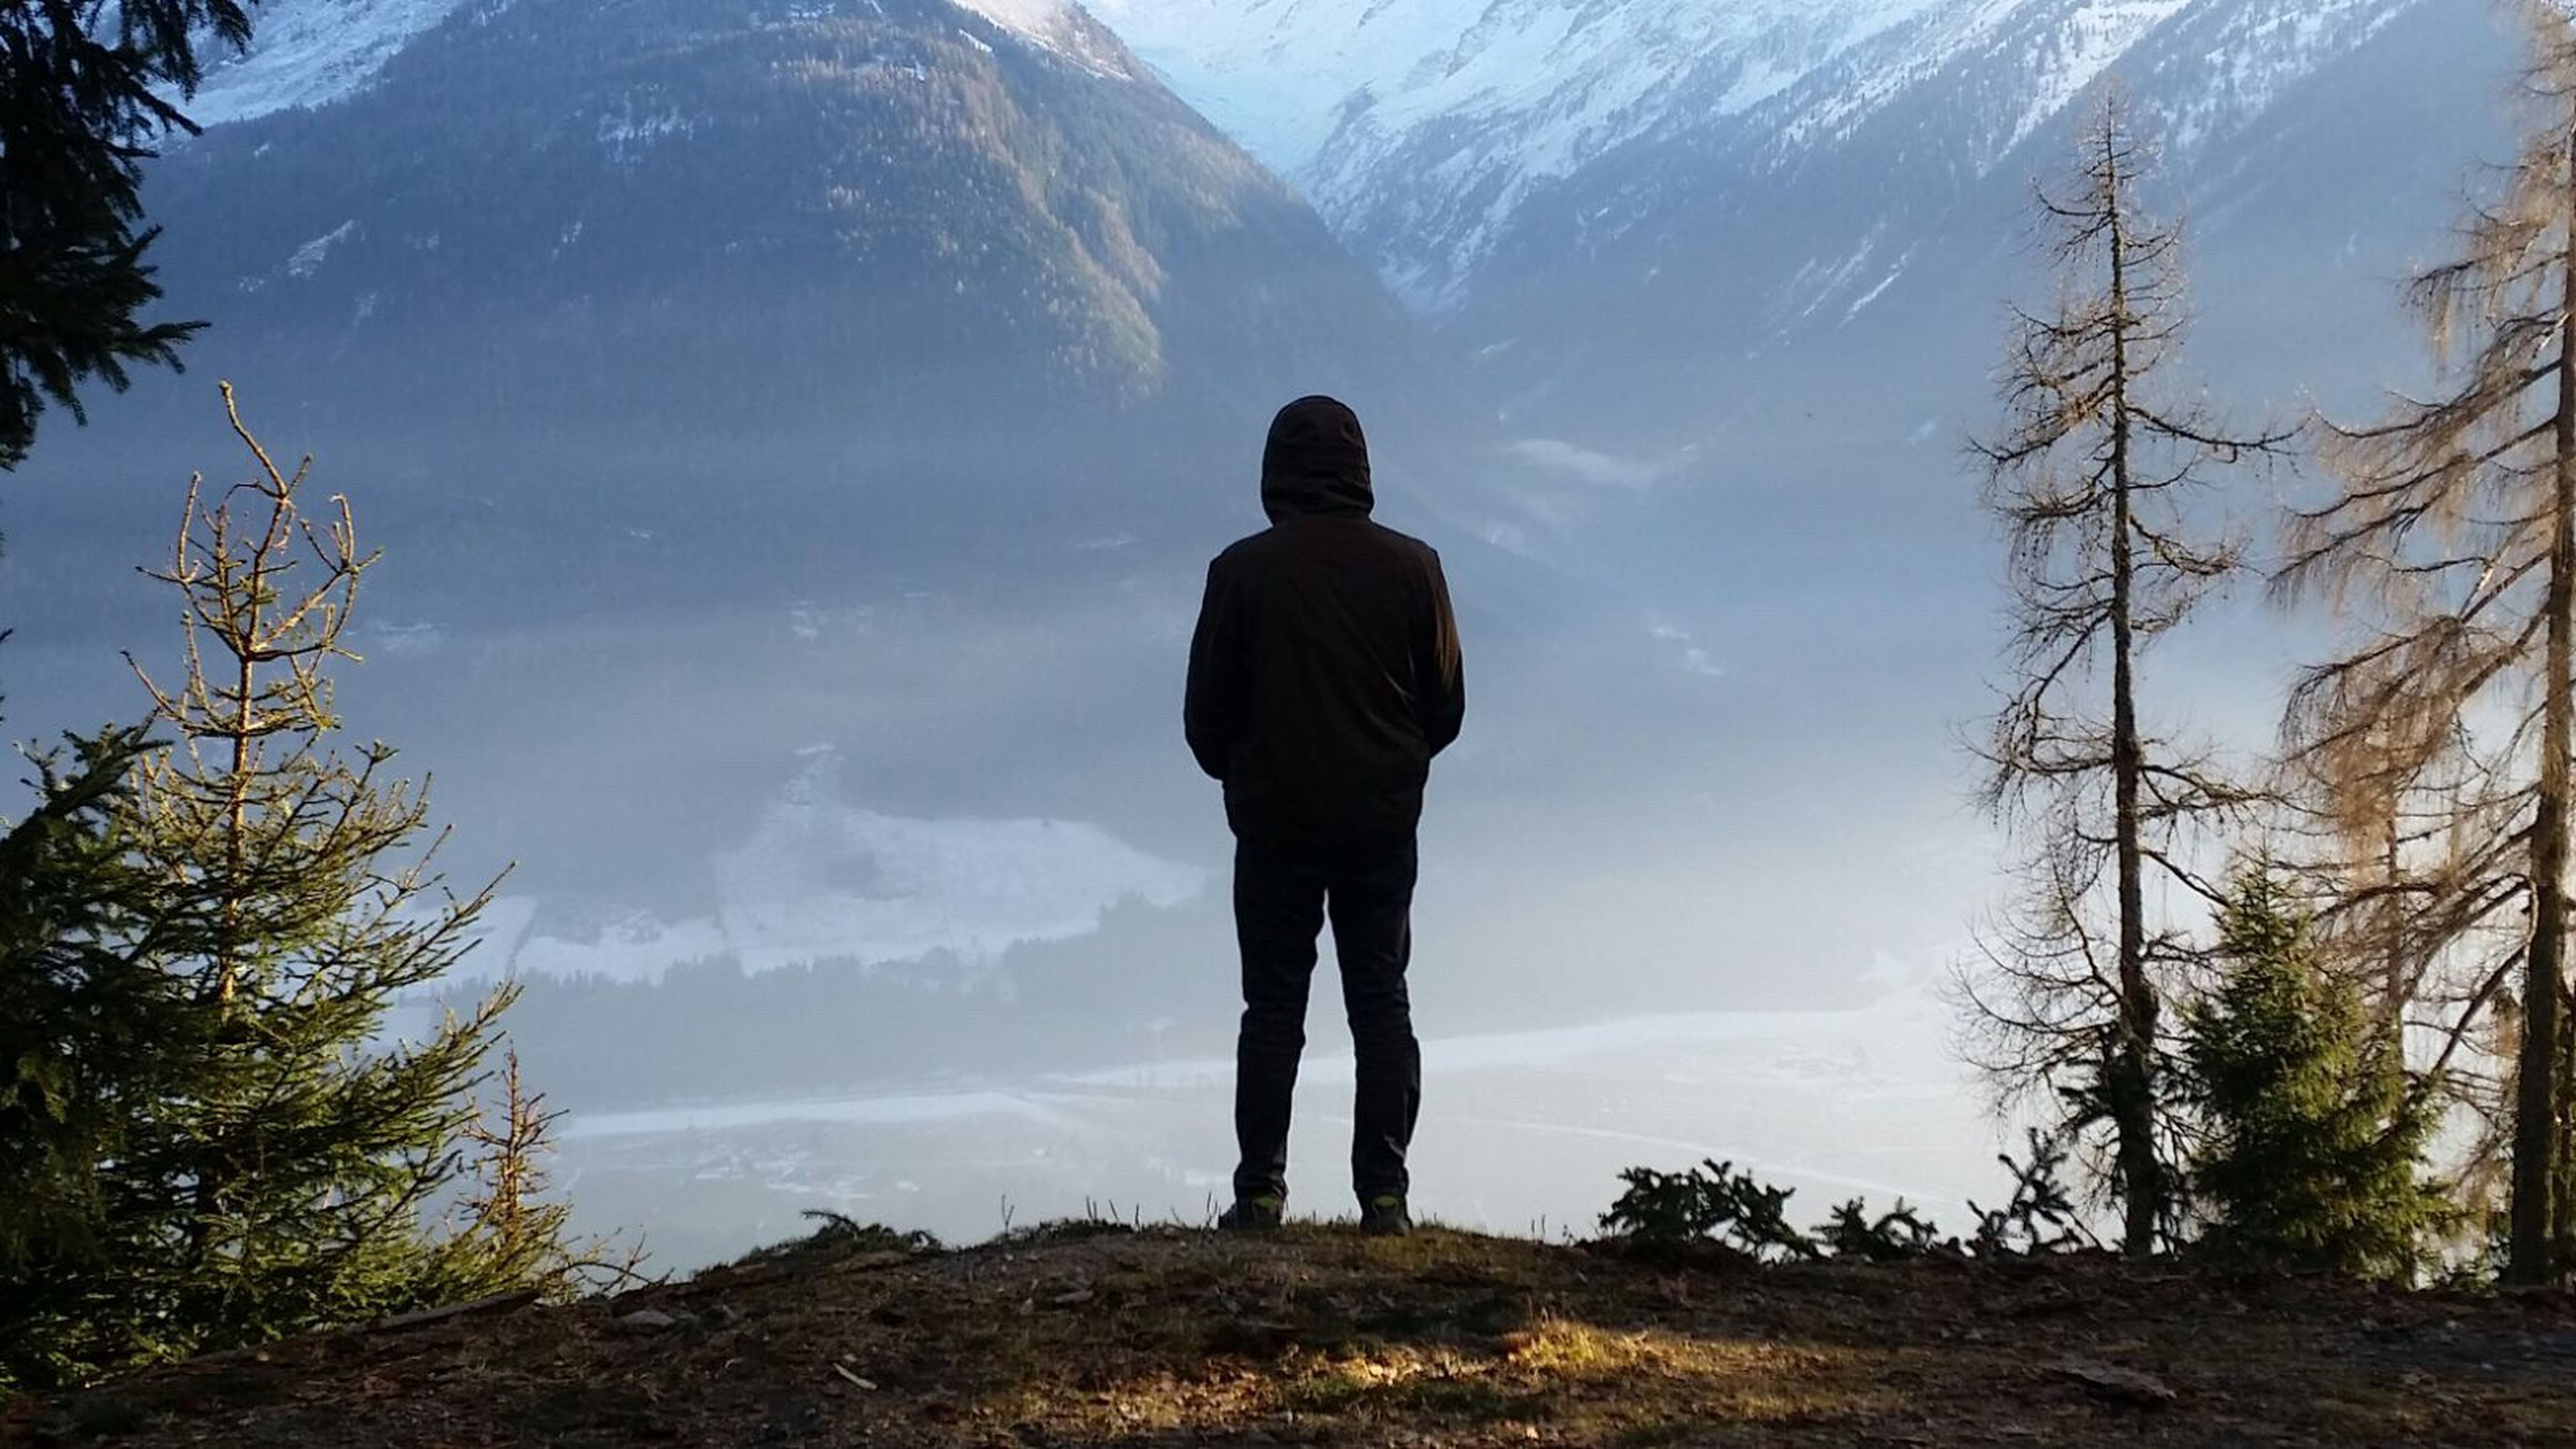 mountain, standing, scenics, tranquil scene, rear view, full length, tree, remote, men, leisure activity, tranquility, beauty in nature, lifestyles, getting away from it all, idyllic, mountain range, solitude, nature, non-urban scene, relaxation, vacations, tourism, escapism, carefree, majestic, mountain peak, outdoors, day